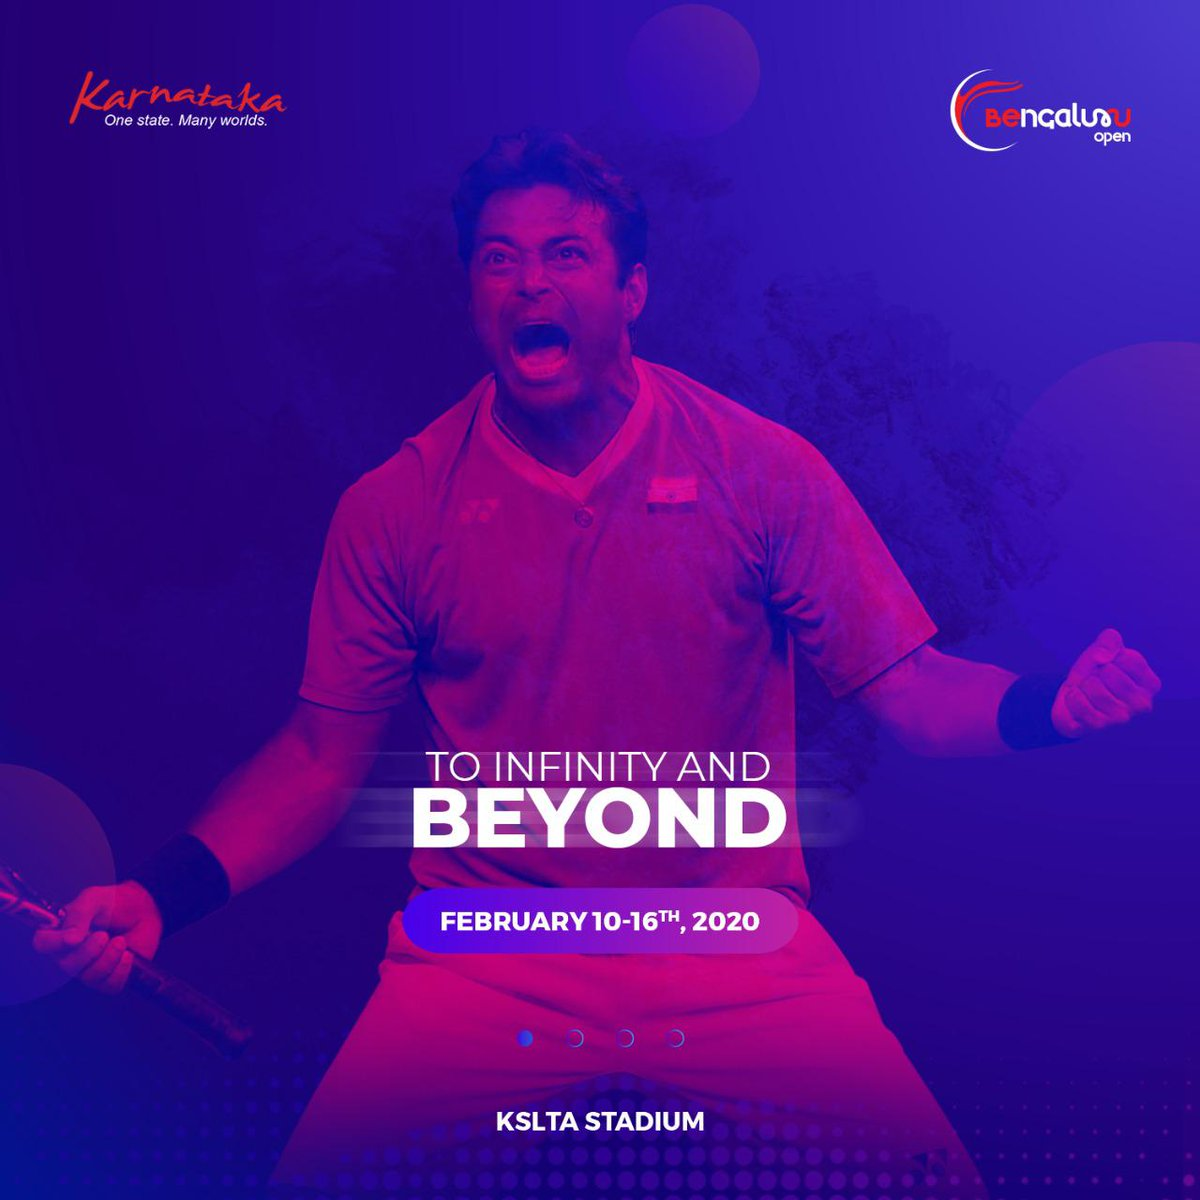 Records are meant to be broken. Congratulations to @Leander for bettering his own record by winning his 44th Doubles Match at the #DavisCup along with debutant Jeevan Nedunchezhiyan as #India beat #Pakistan to book their qualifier spot against Croatia. #BlrTennisOpen #ATP #GameOn